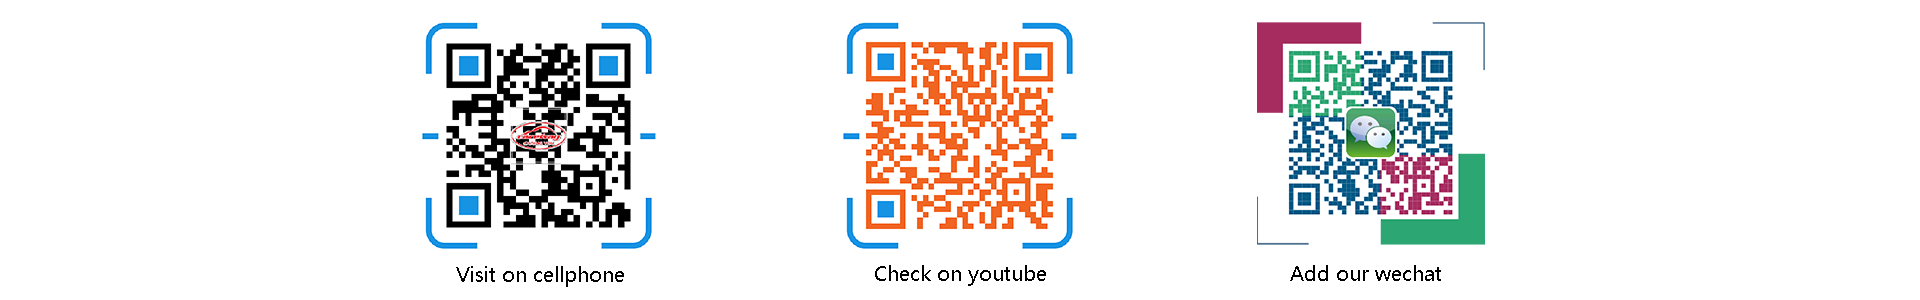 QR CODE FOR WEB AND WECHAT